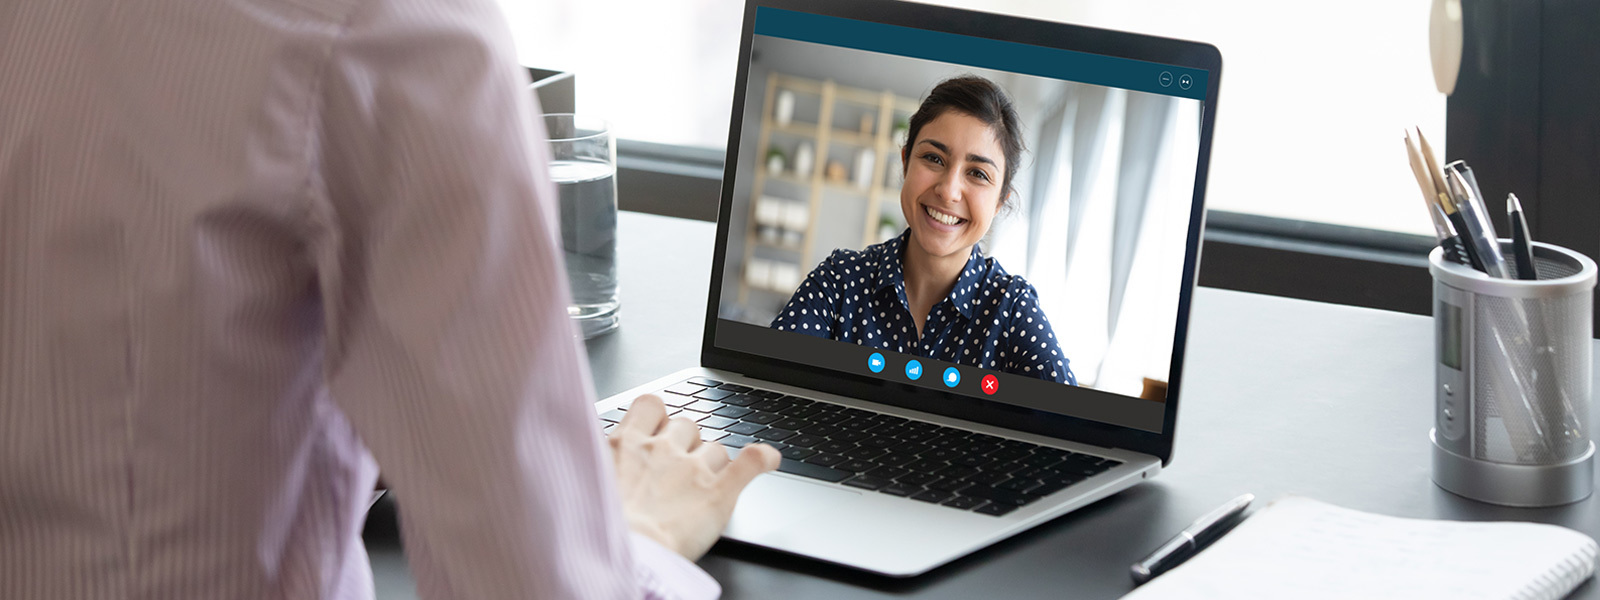 Image of a benefits plan advisor having a meeting with a female colleague on video chat.